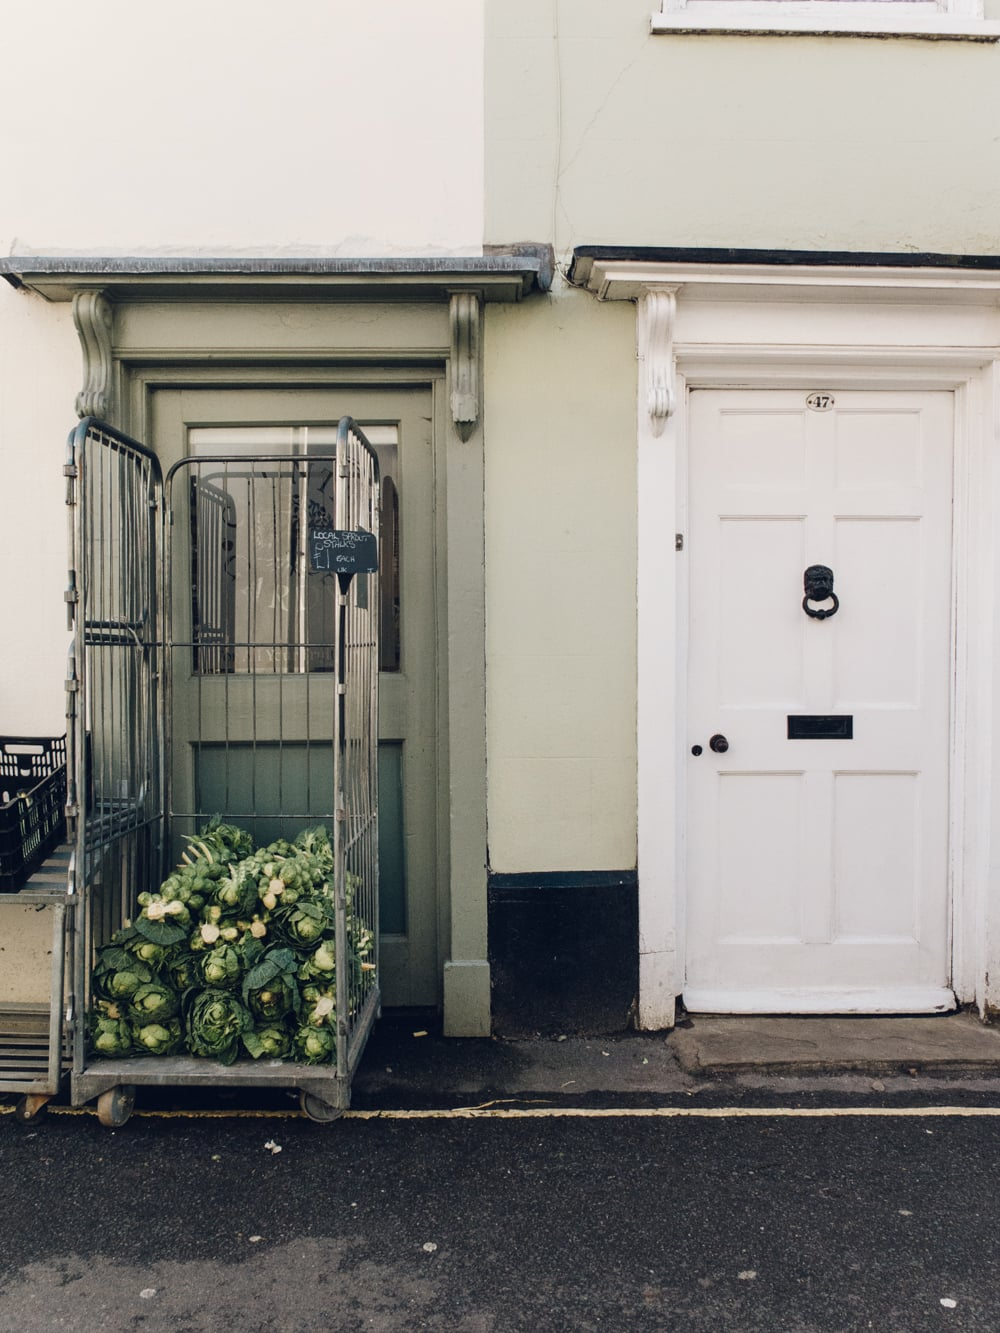 Haarkon Wells Wells-next-the-sea Coast Norfolk architecture Vegetables Sprouts Shop Grocer